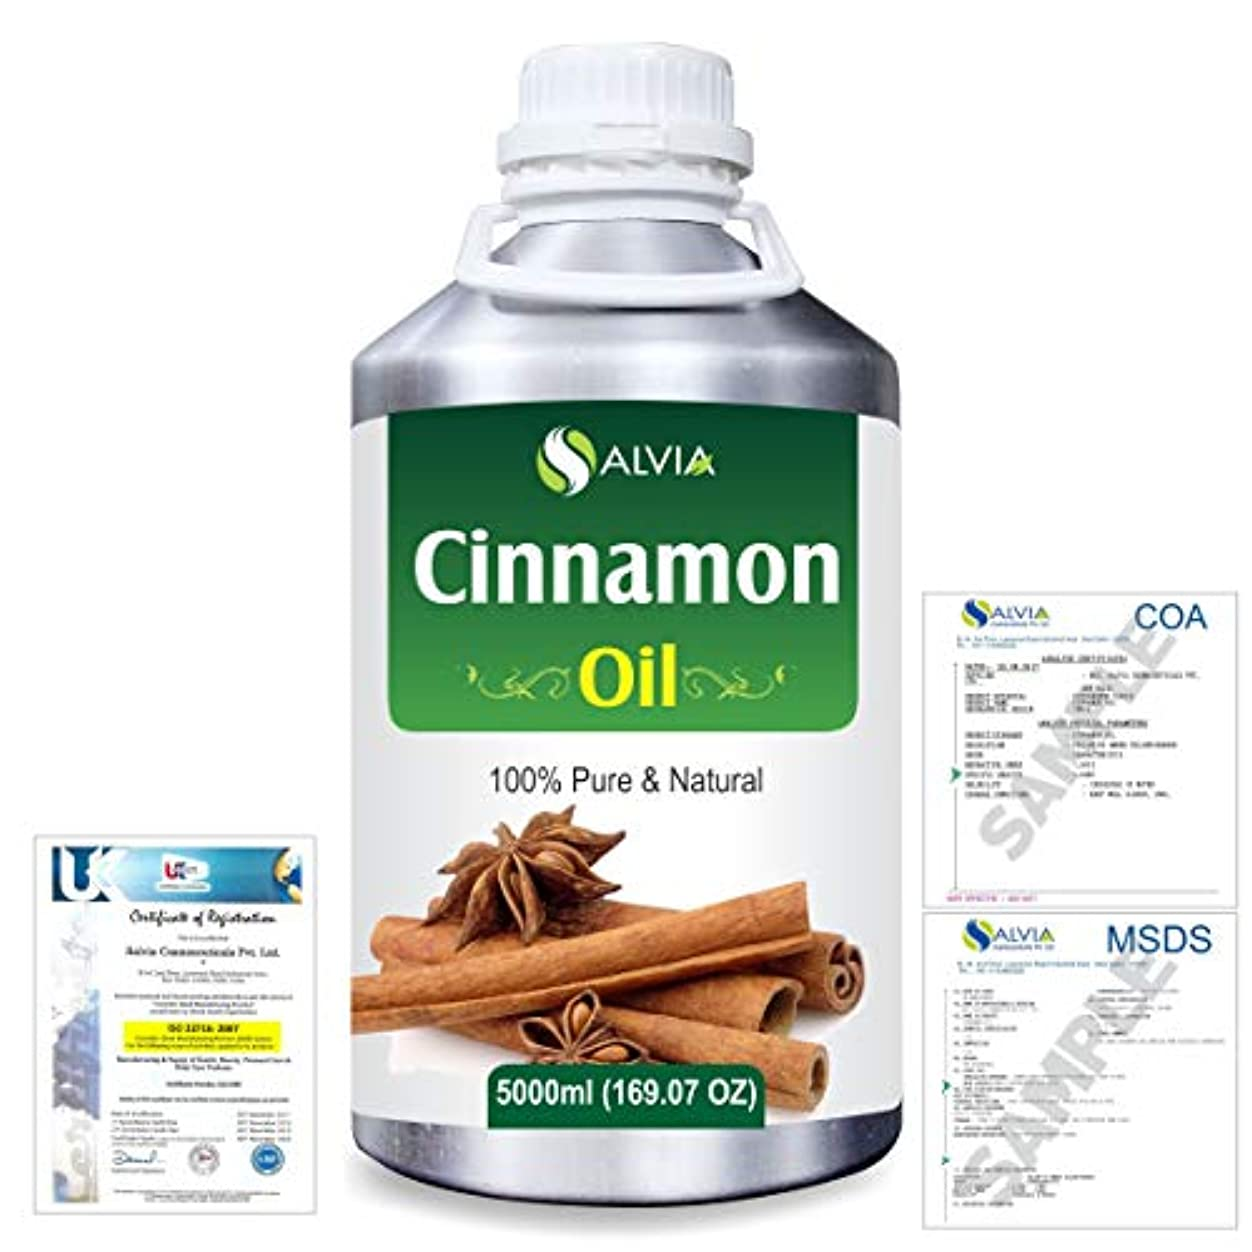 略す船外見るCinnamon (Cinnamomum Cassia) 100% Natural Pure Essential Oil 5000ml/169fl.oz.